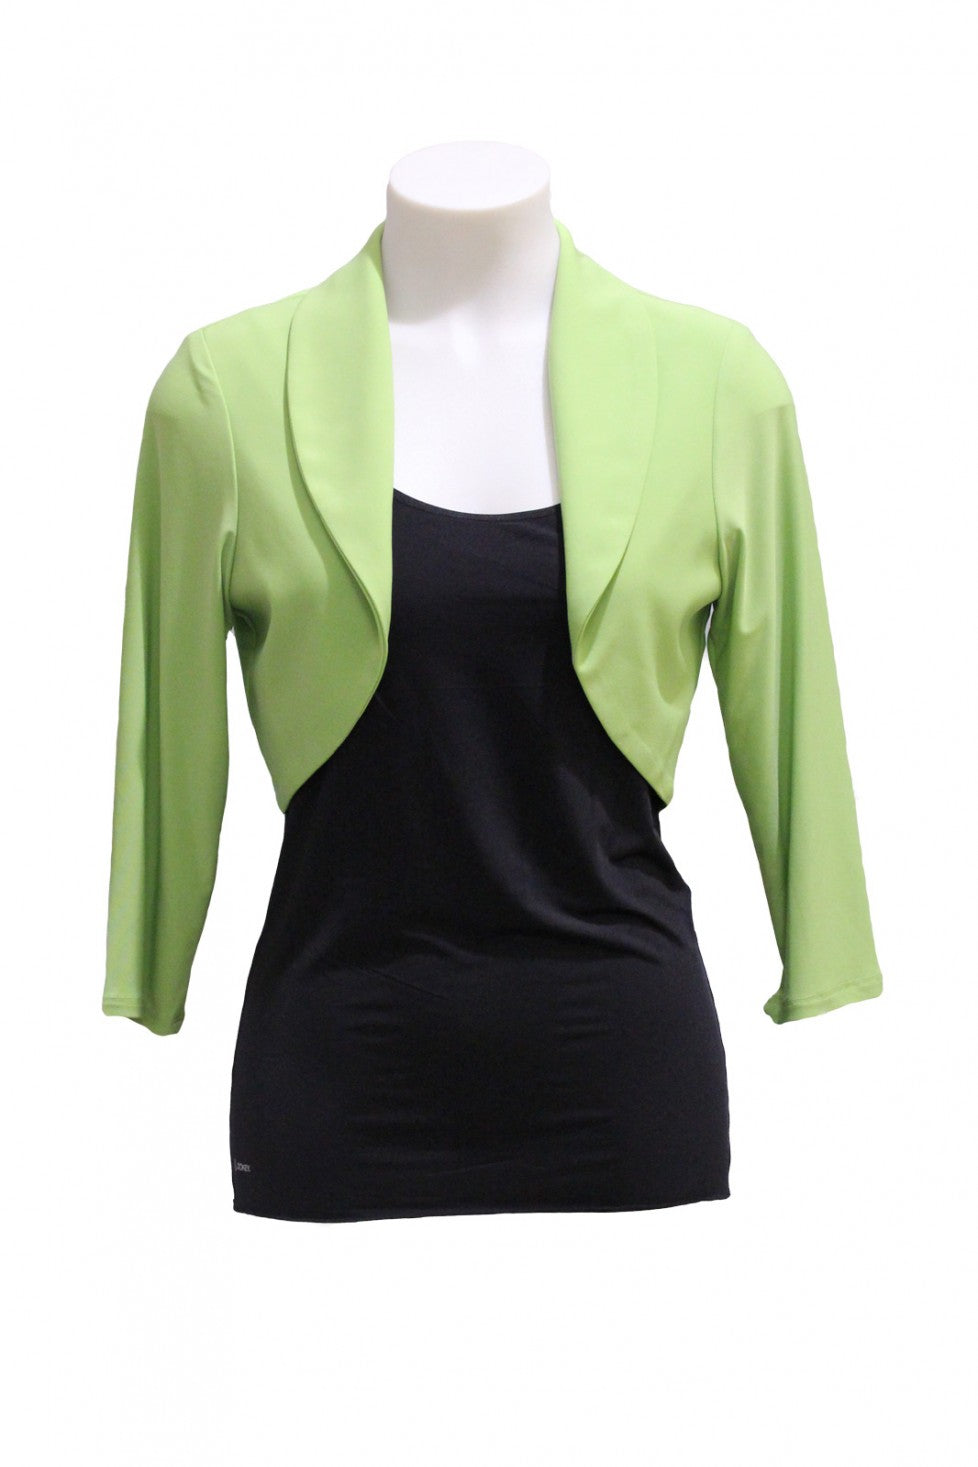 Lime Frank Lyman Bolero Style and Grace